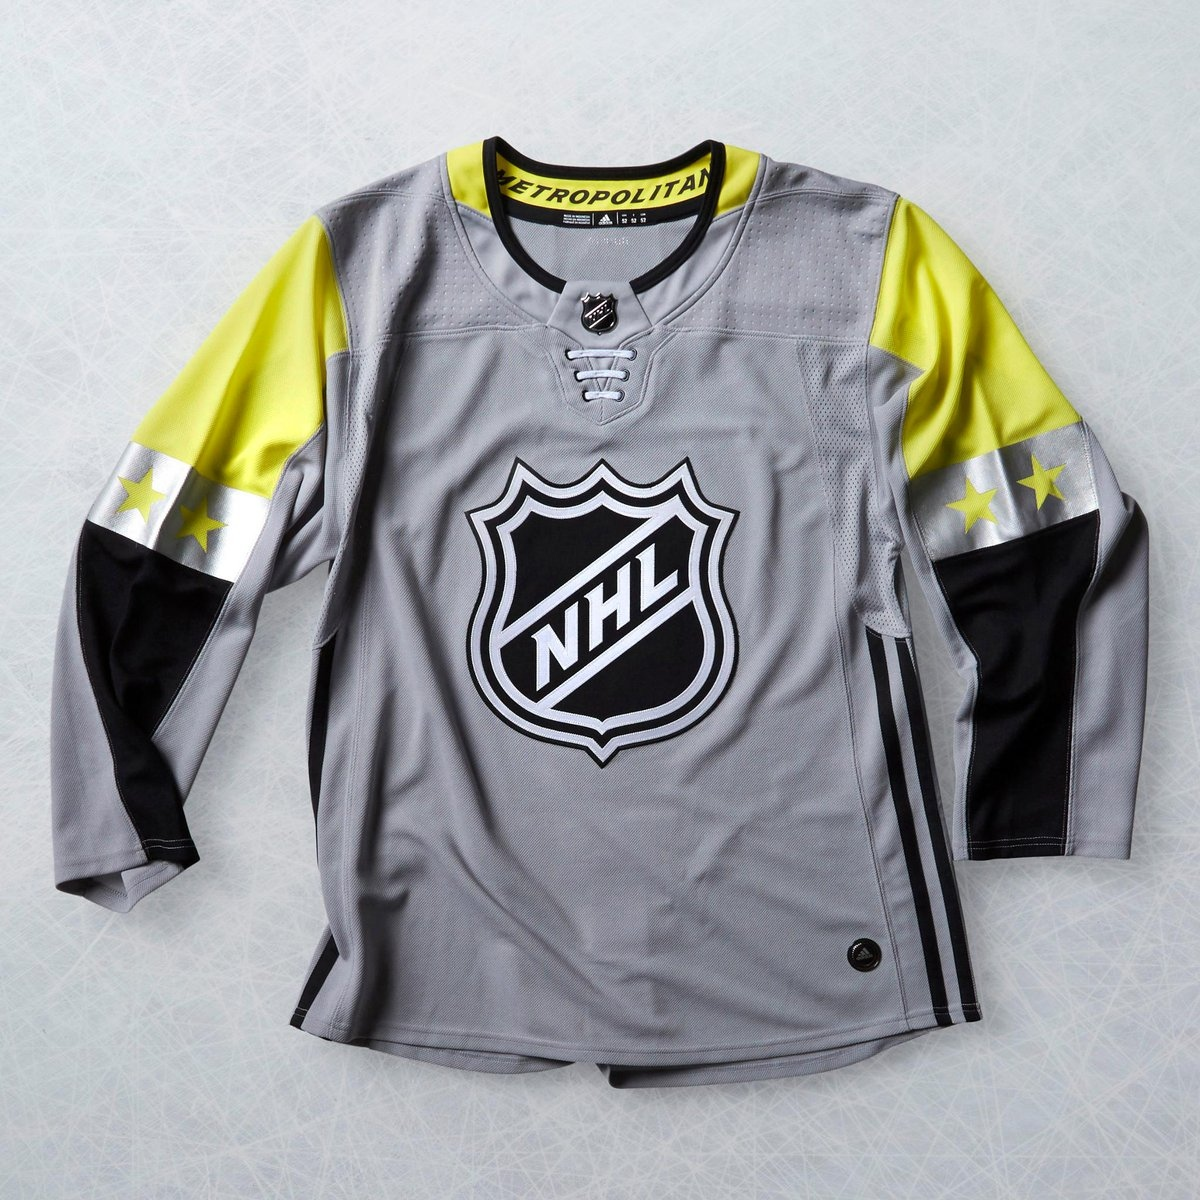 f8ec68bb2 NHL unveils slick jerseys for this year s All-Star Game - Article ...